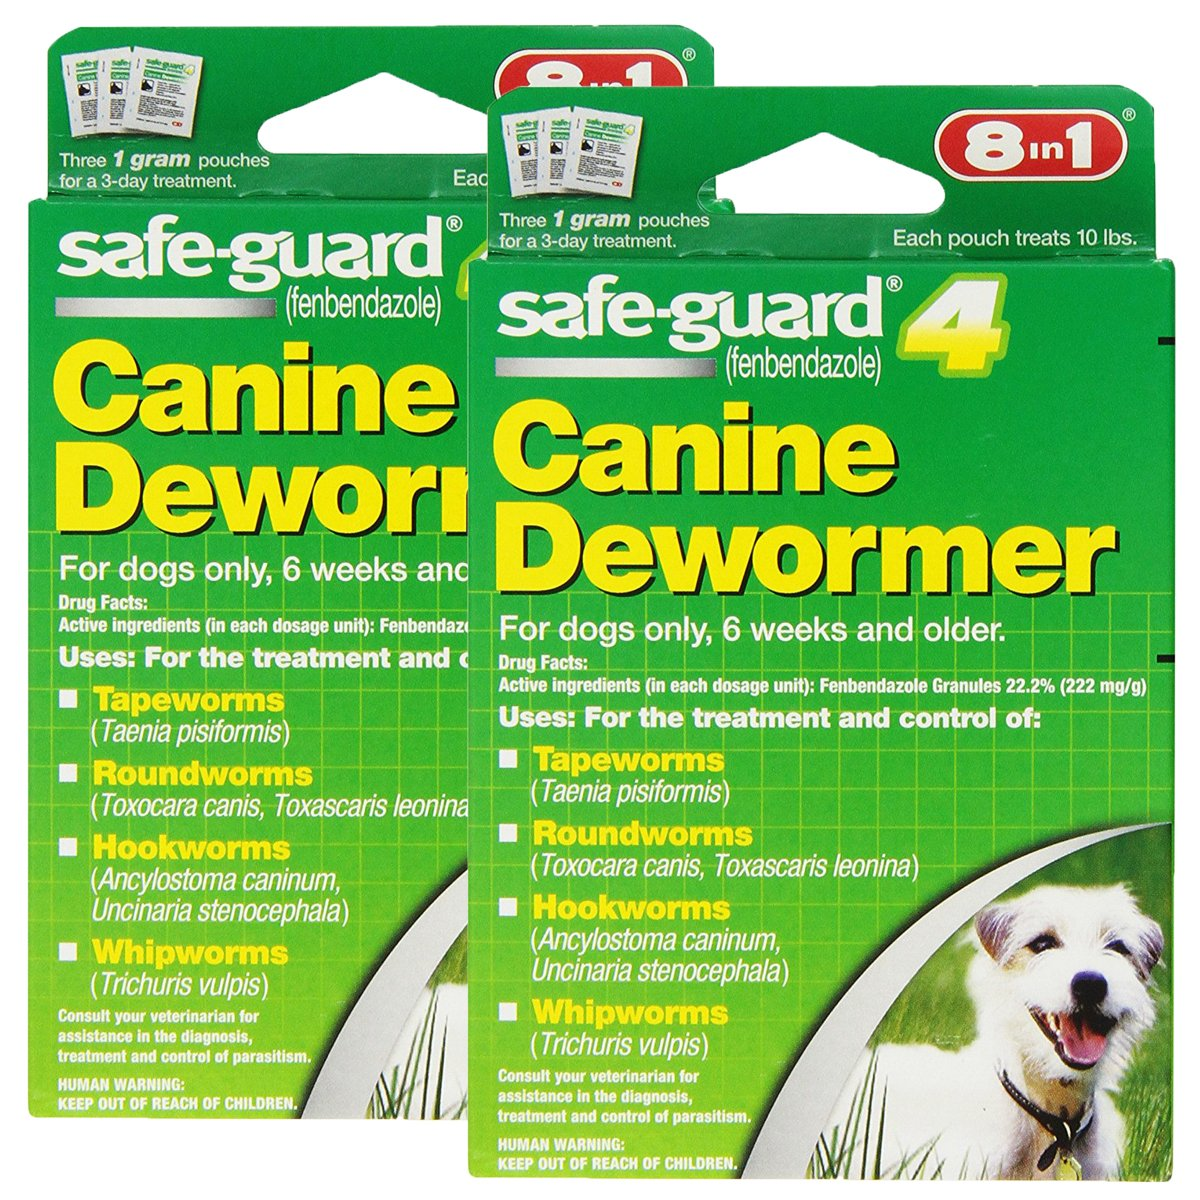 Excel 8in1 Safe-Guard Canine Dewormer for Dogs, 3-Day Treatment